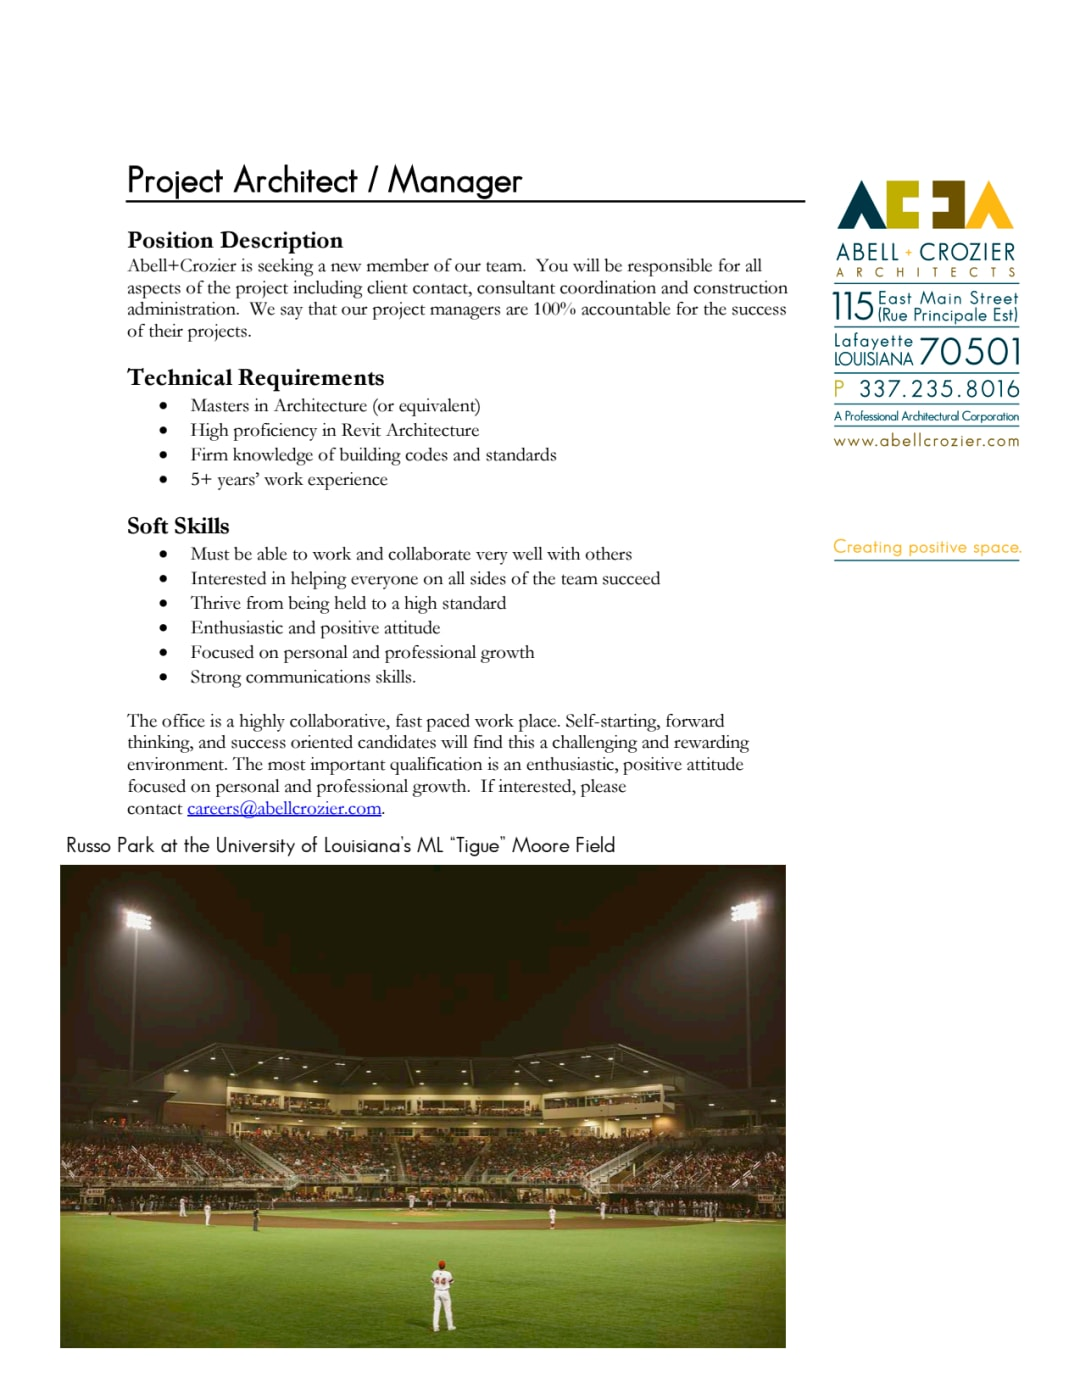 Project Architect Position Available Aia